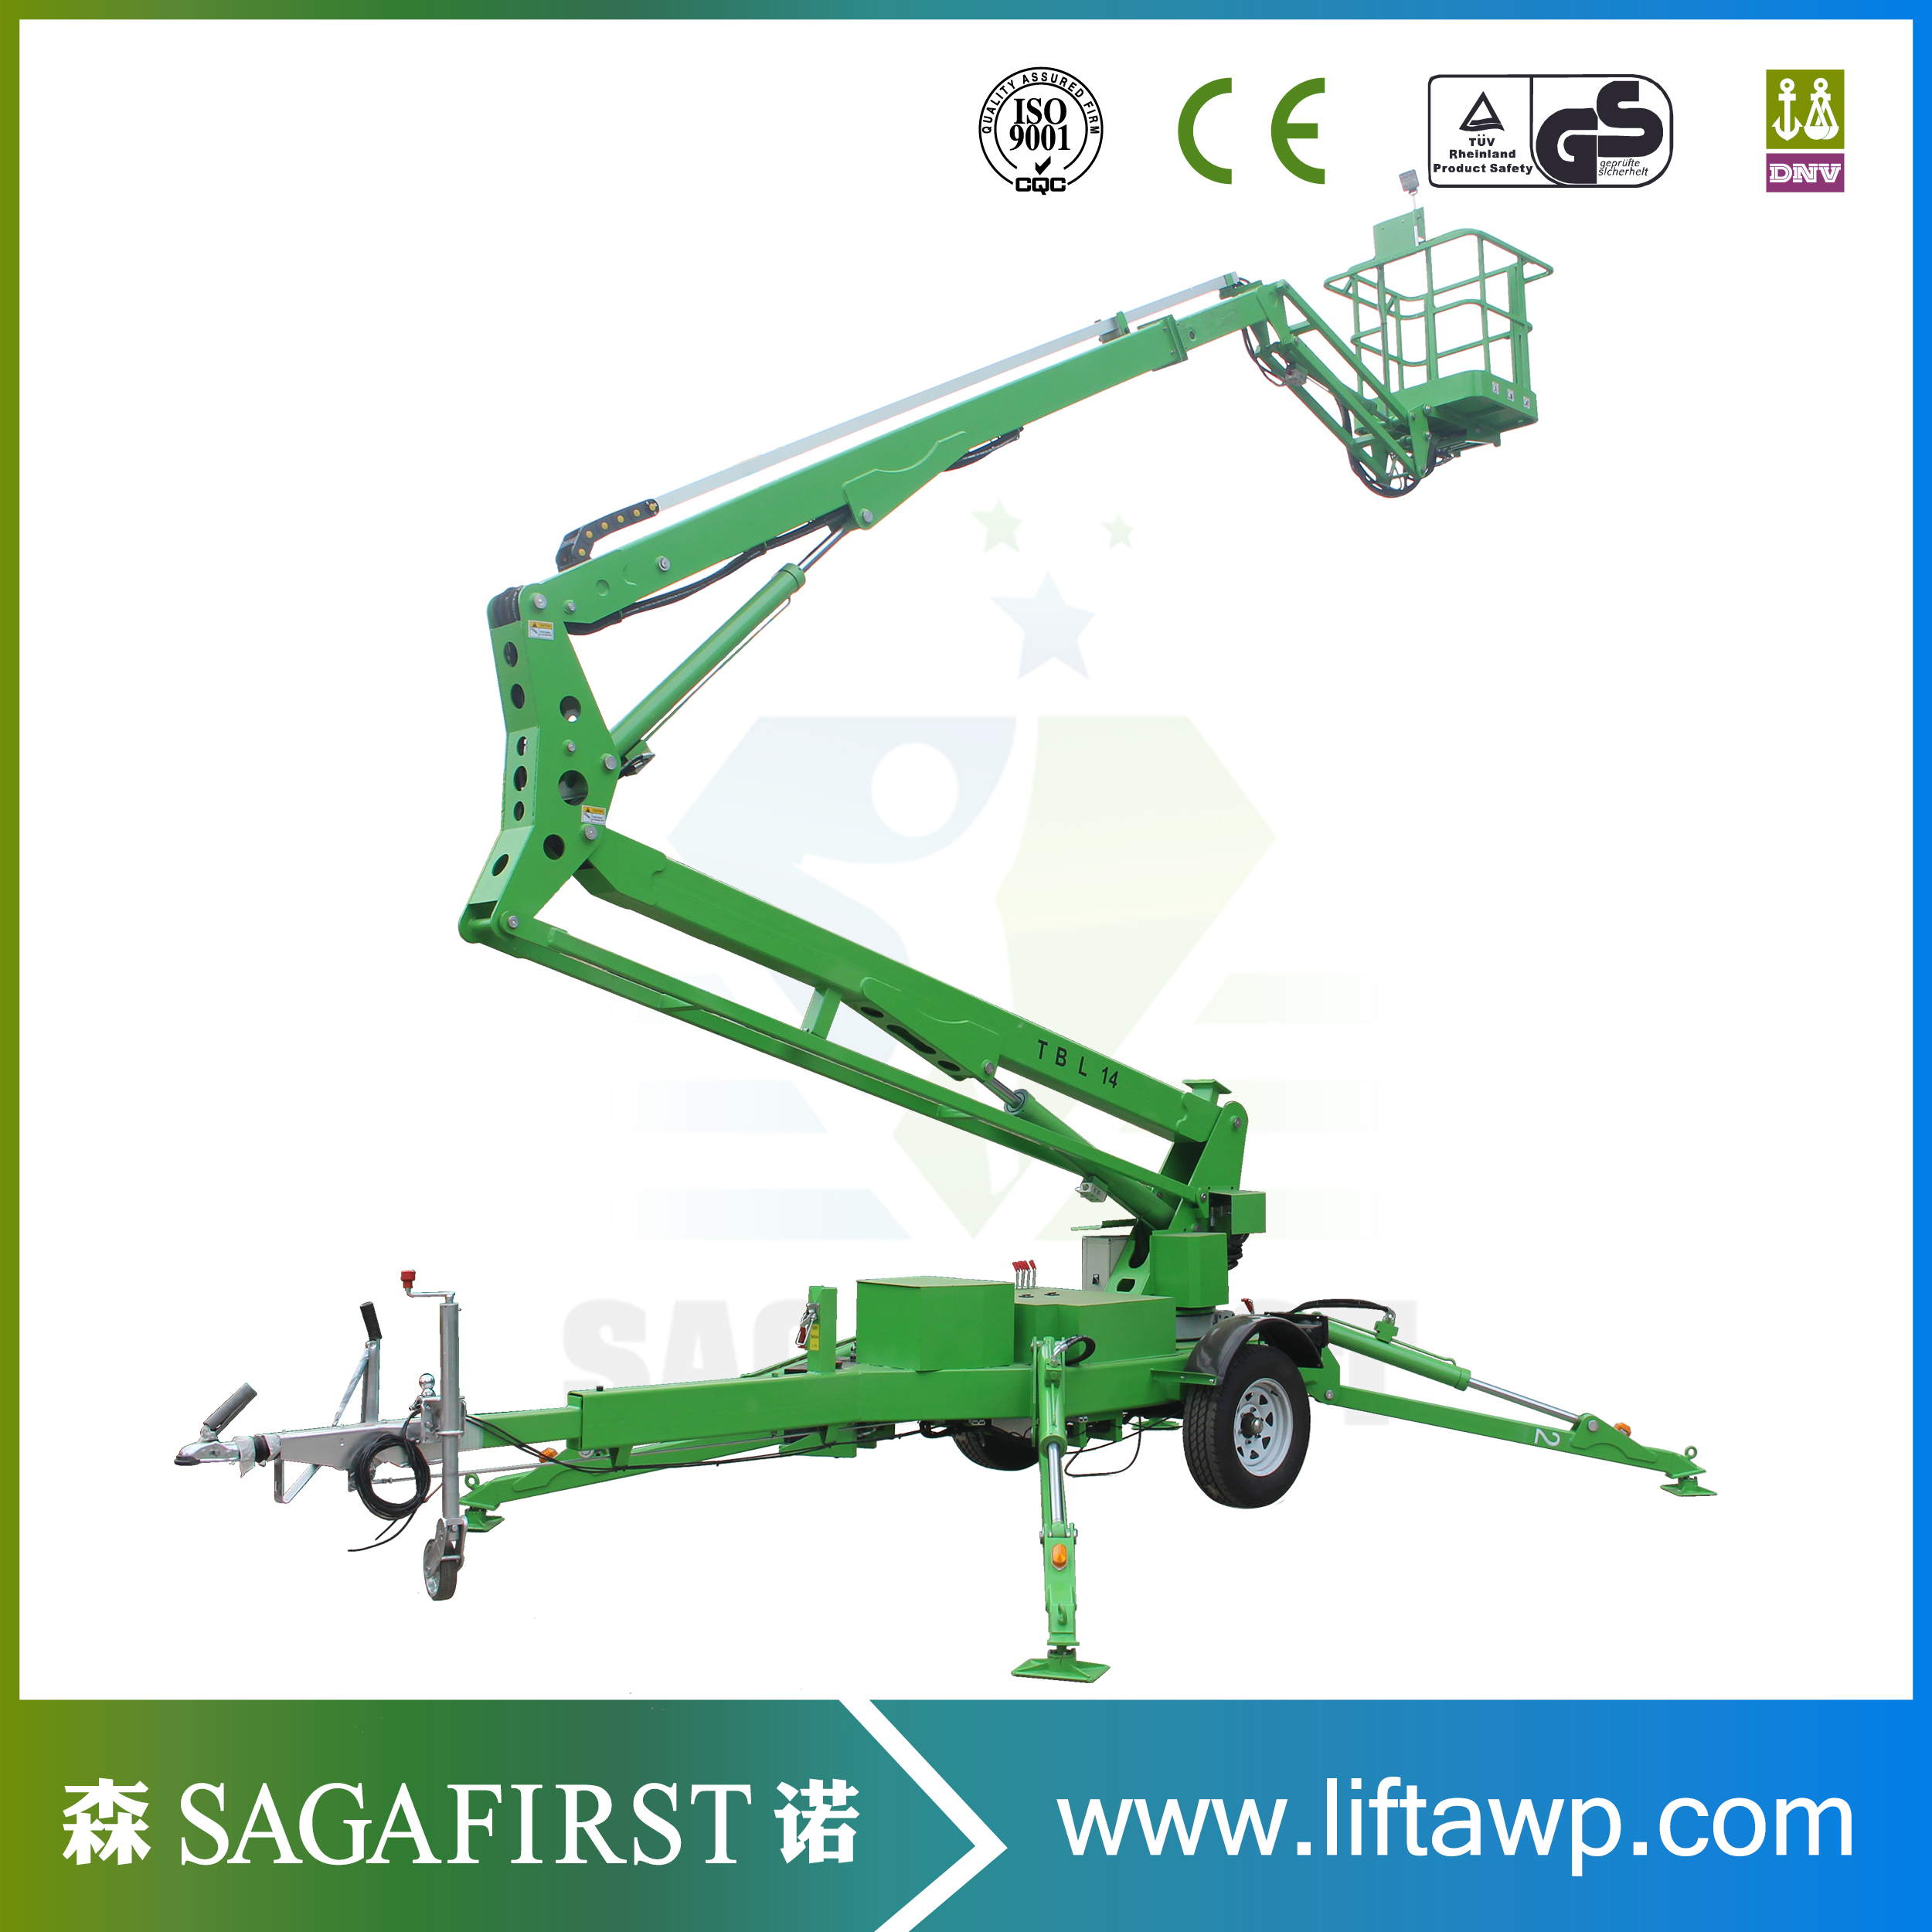 Self Propelled Mobile Boom Lift Towable Cherry Picker Spider Lift For Sale